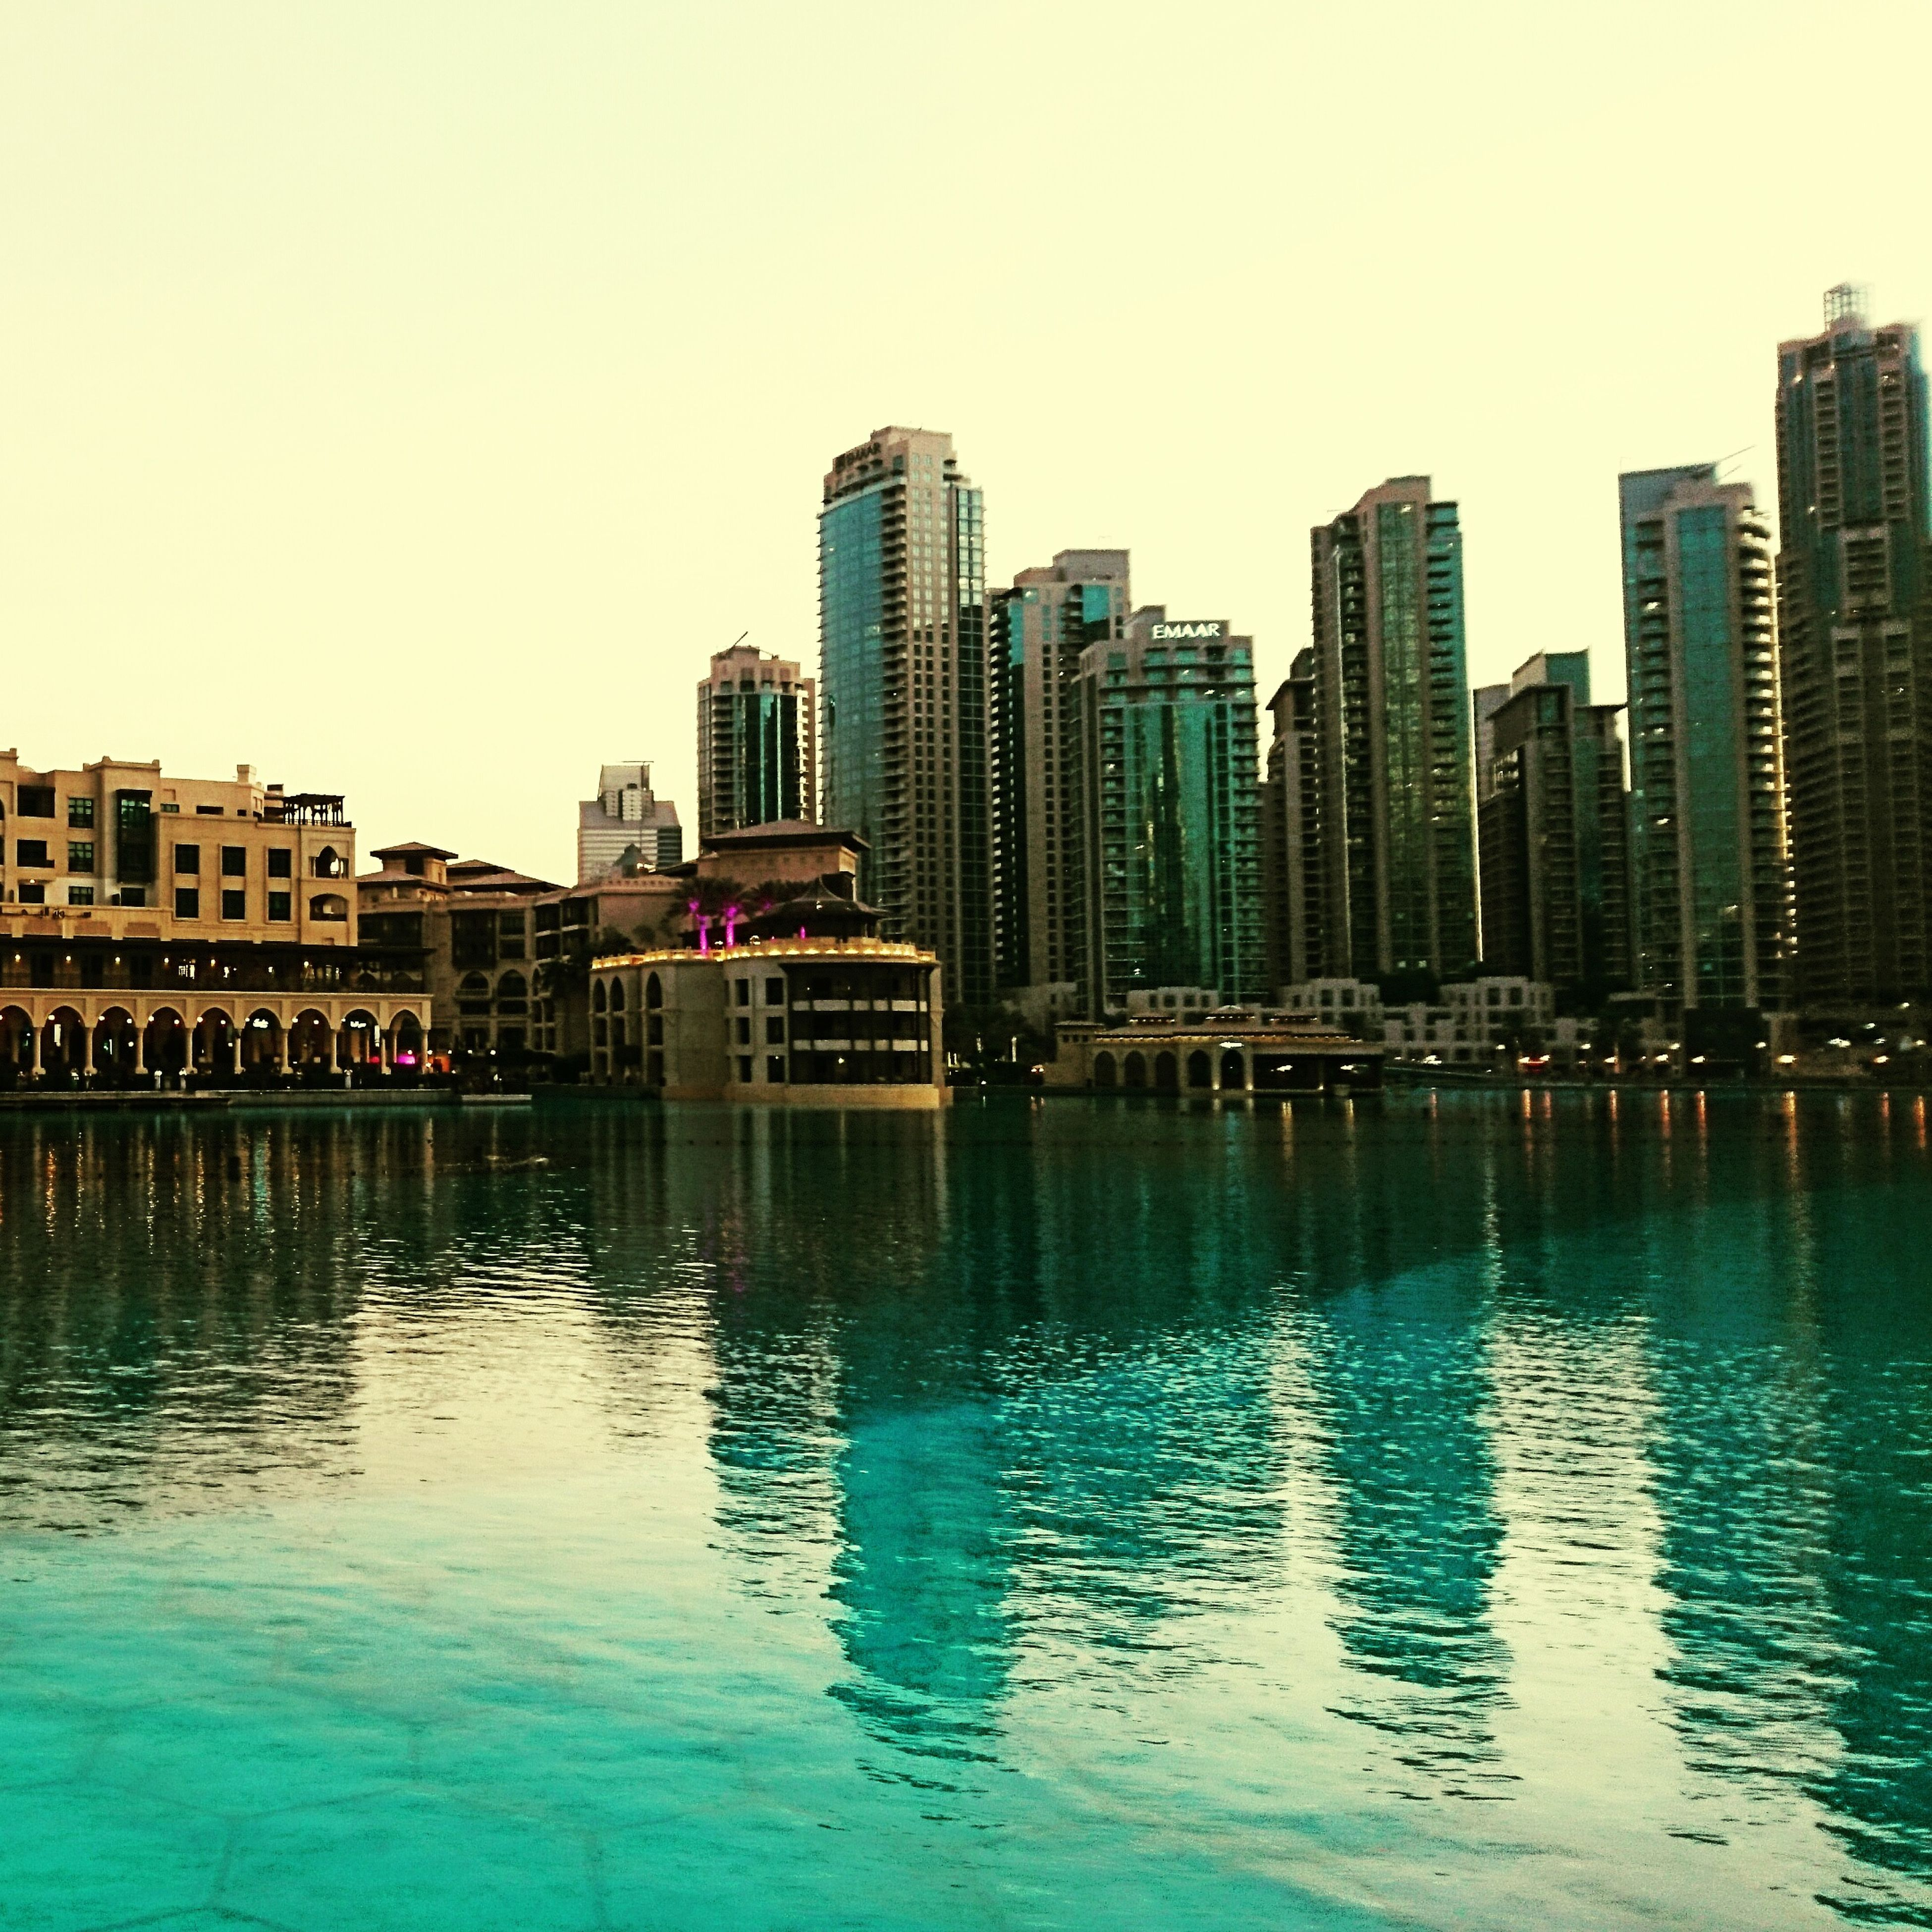 building exterior, city, architecture, reflection, built structure, skyscraper, modern, cityscape, urban skyline, clear sky, outdoors, waterfront, water, city life, travel destinations, financial district, downtown district, sky, river, no people, day